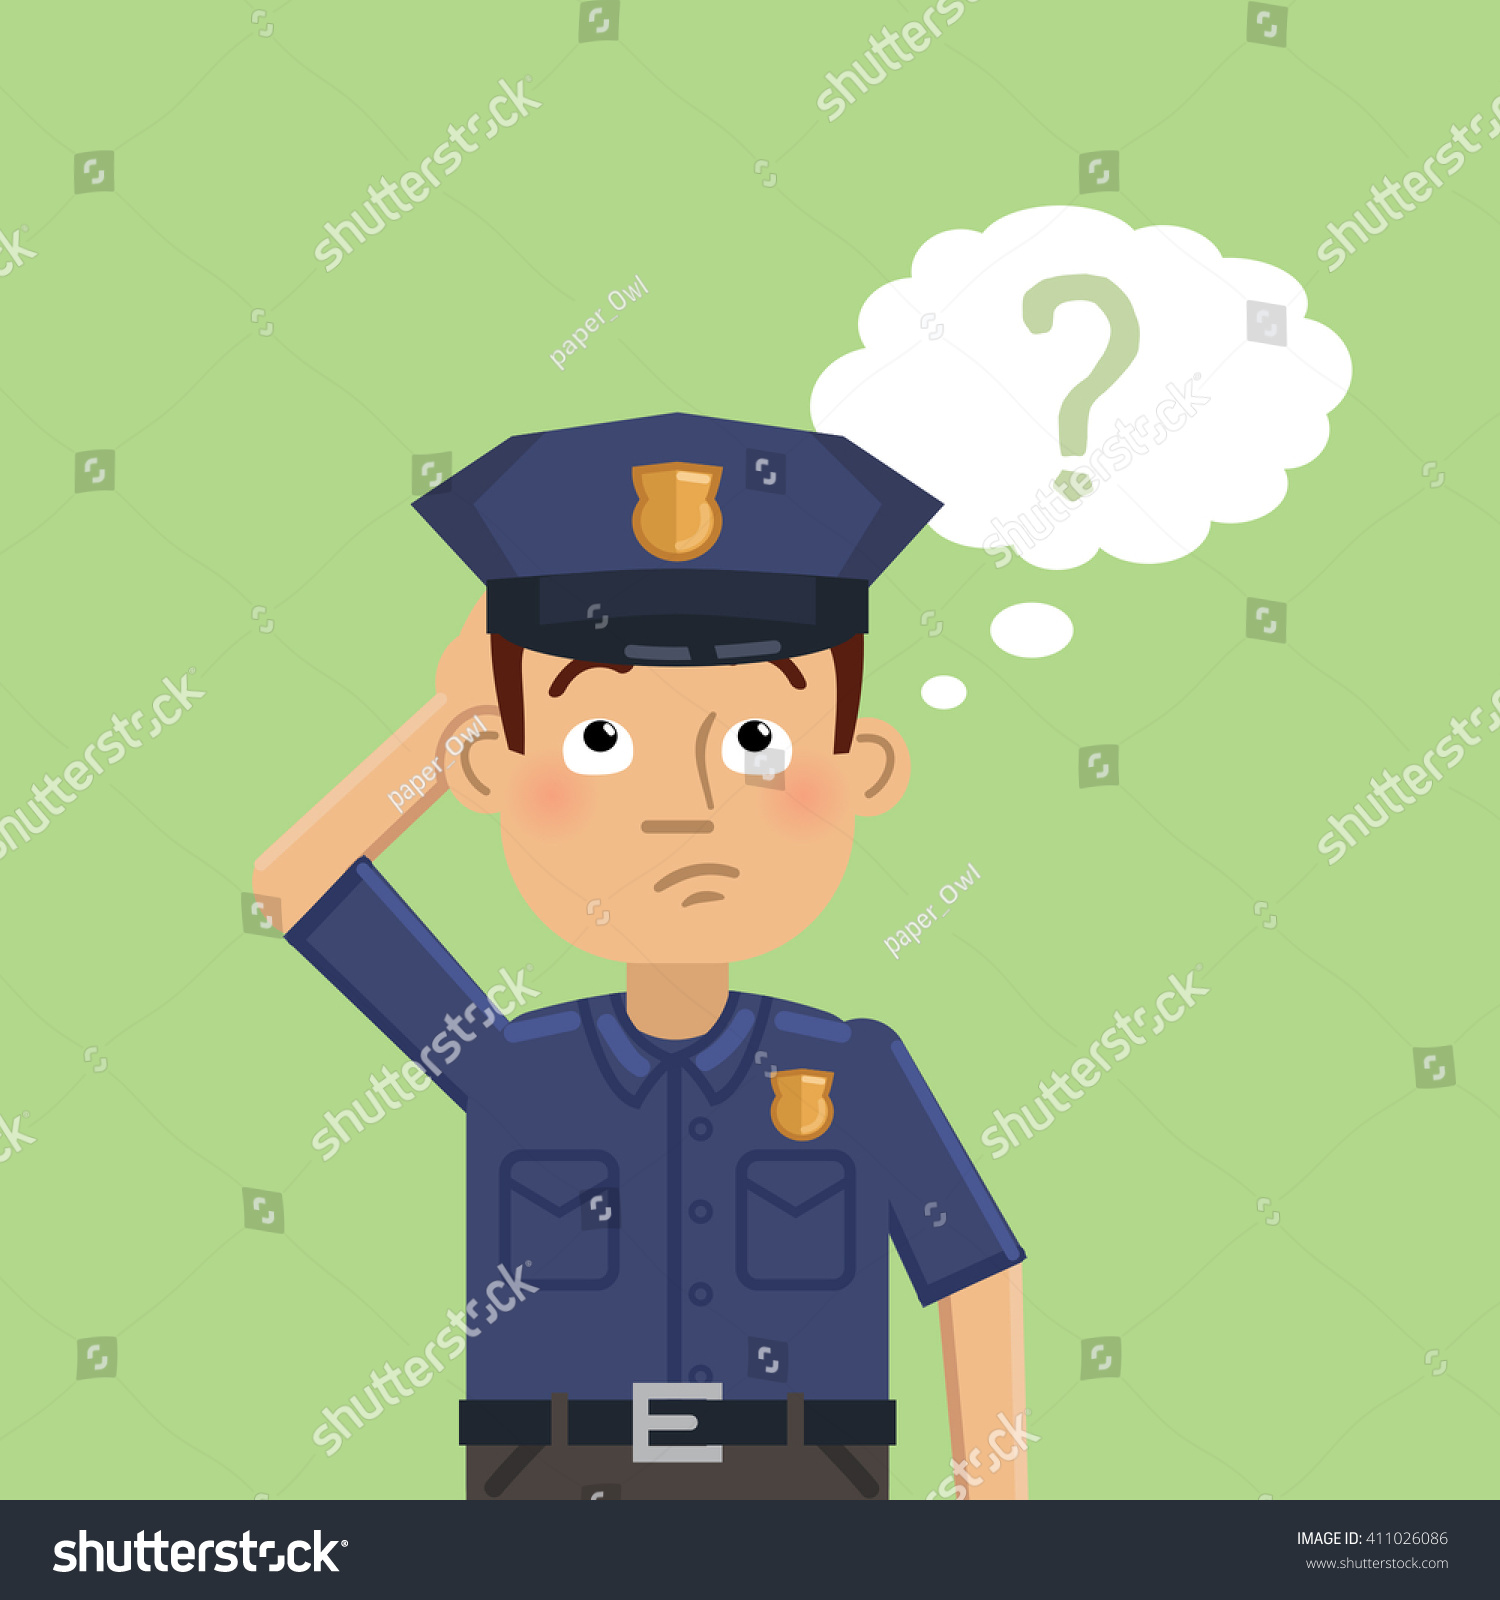 illustration confused police officer thinking making stock vector